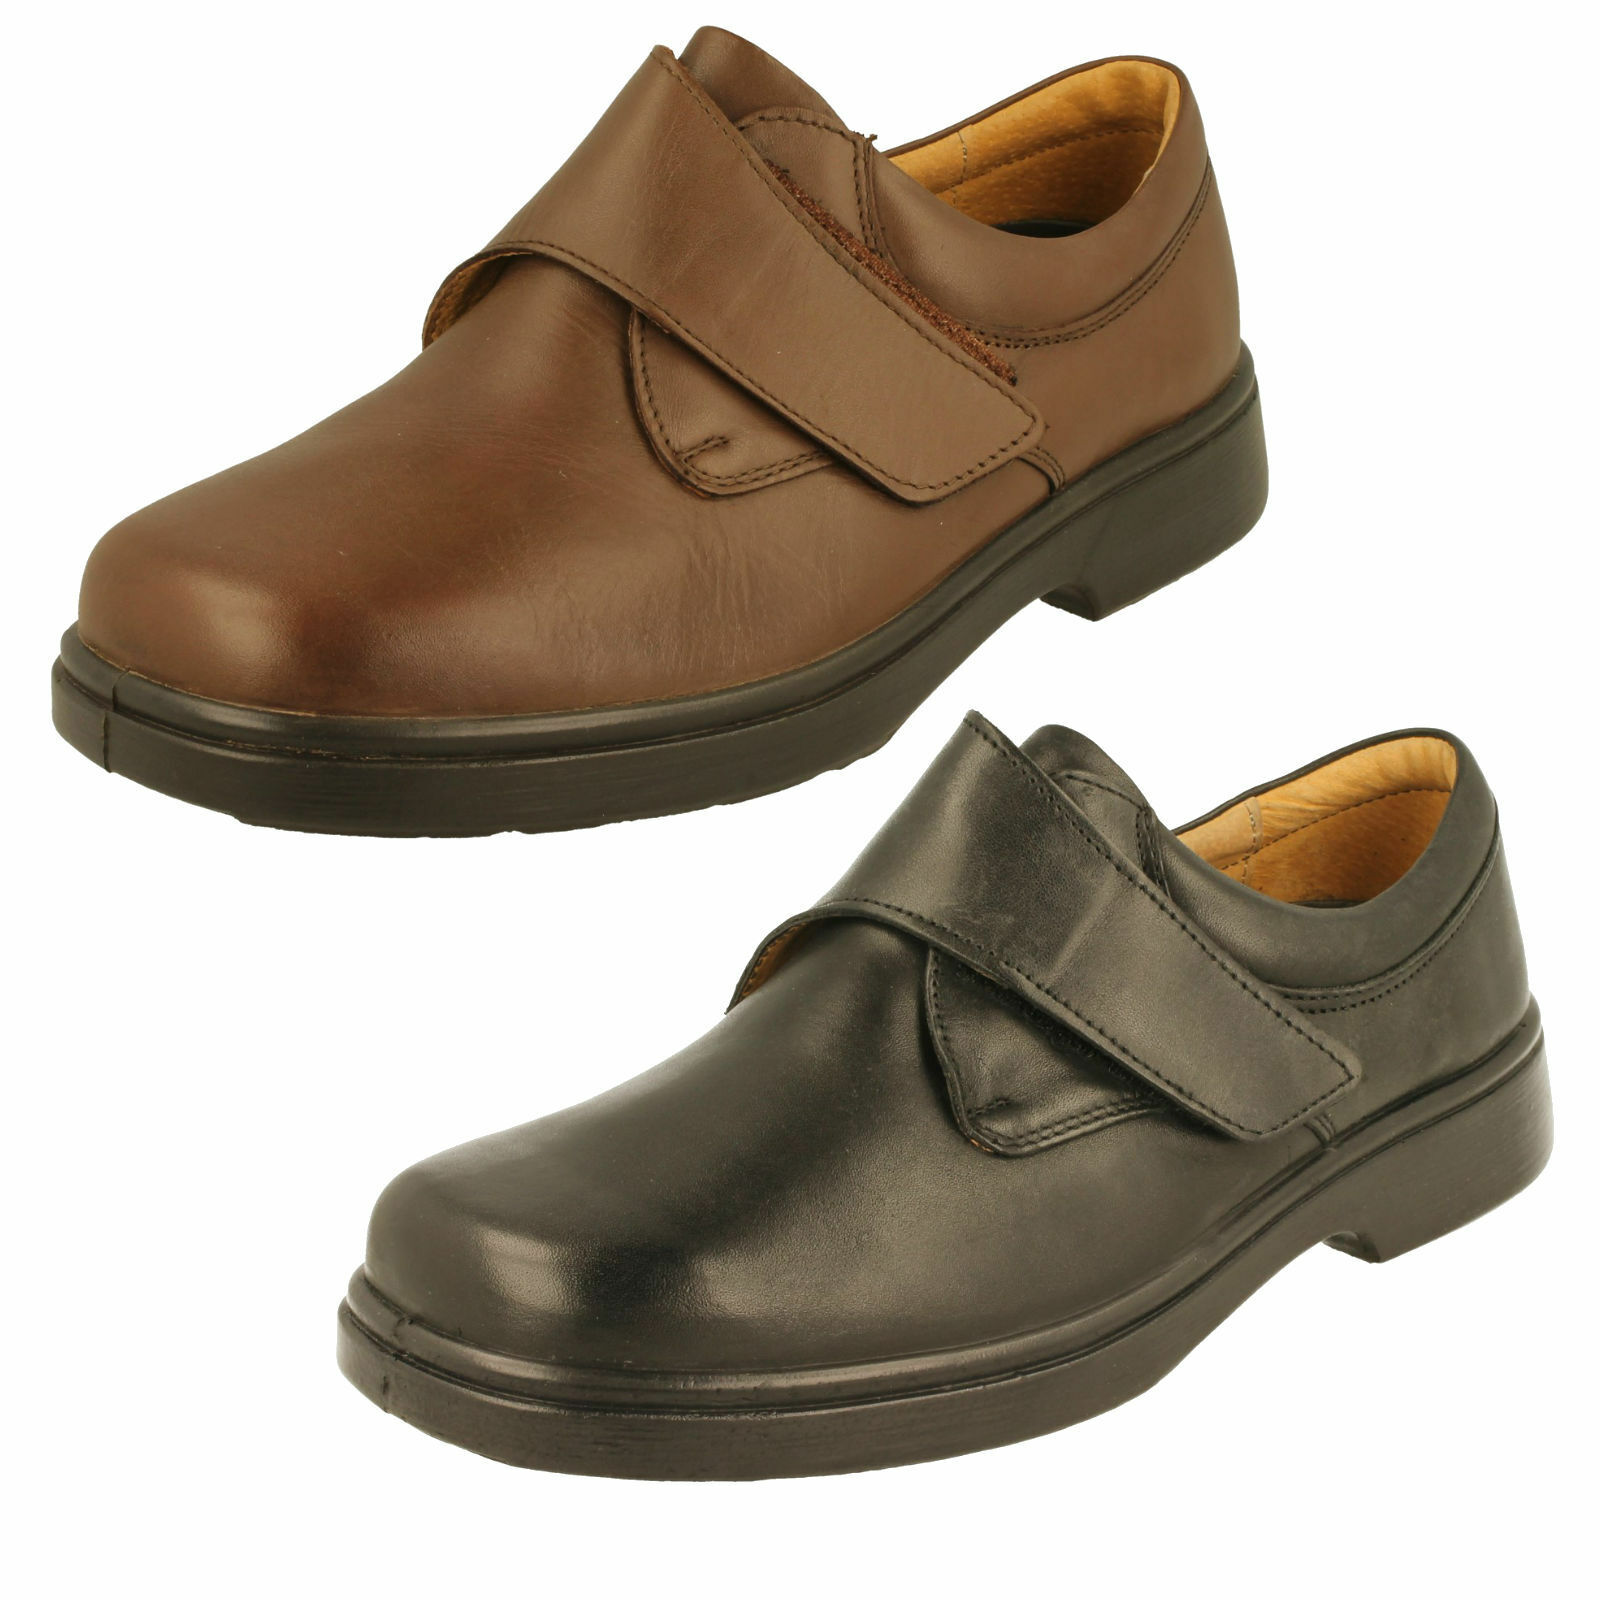 Mens DB shoes Wide And Deep Fitting - Reece